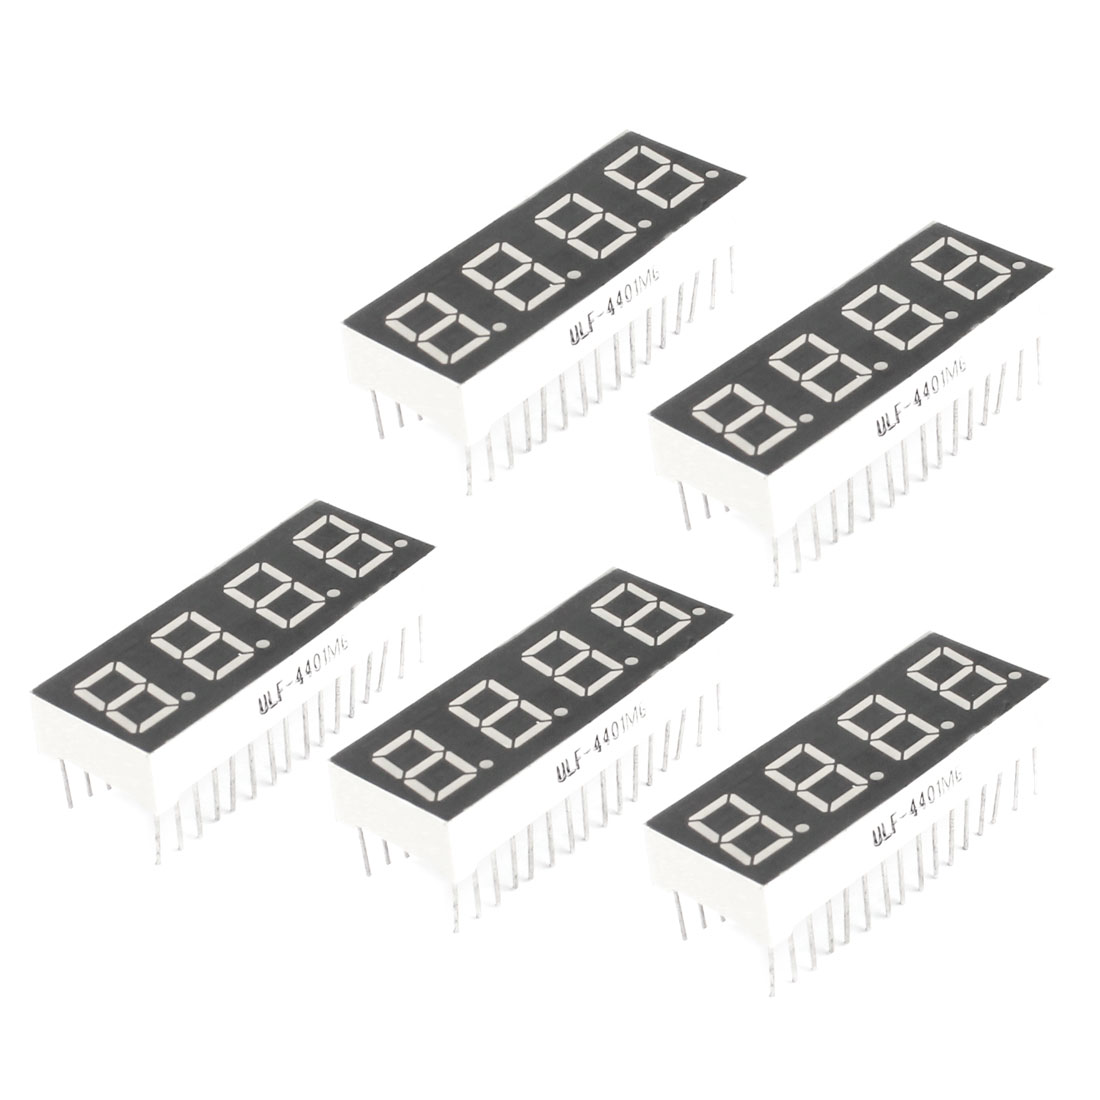 5Pcs 0.4-inch 4-Bit 7-Segment Rectangle Red LED Digital Display Common Cathode Tube